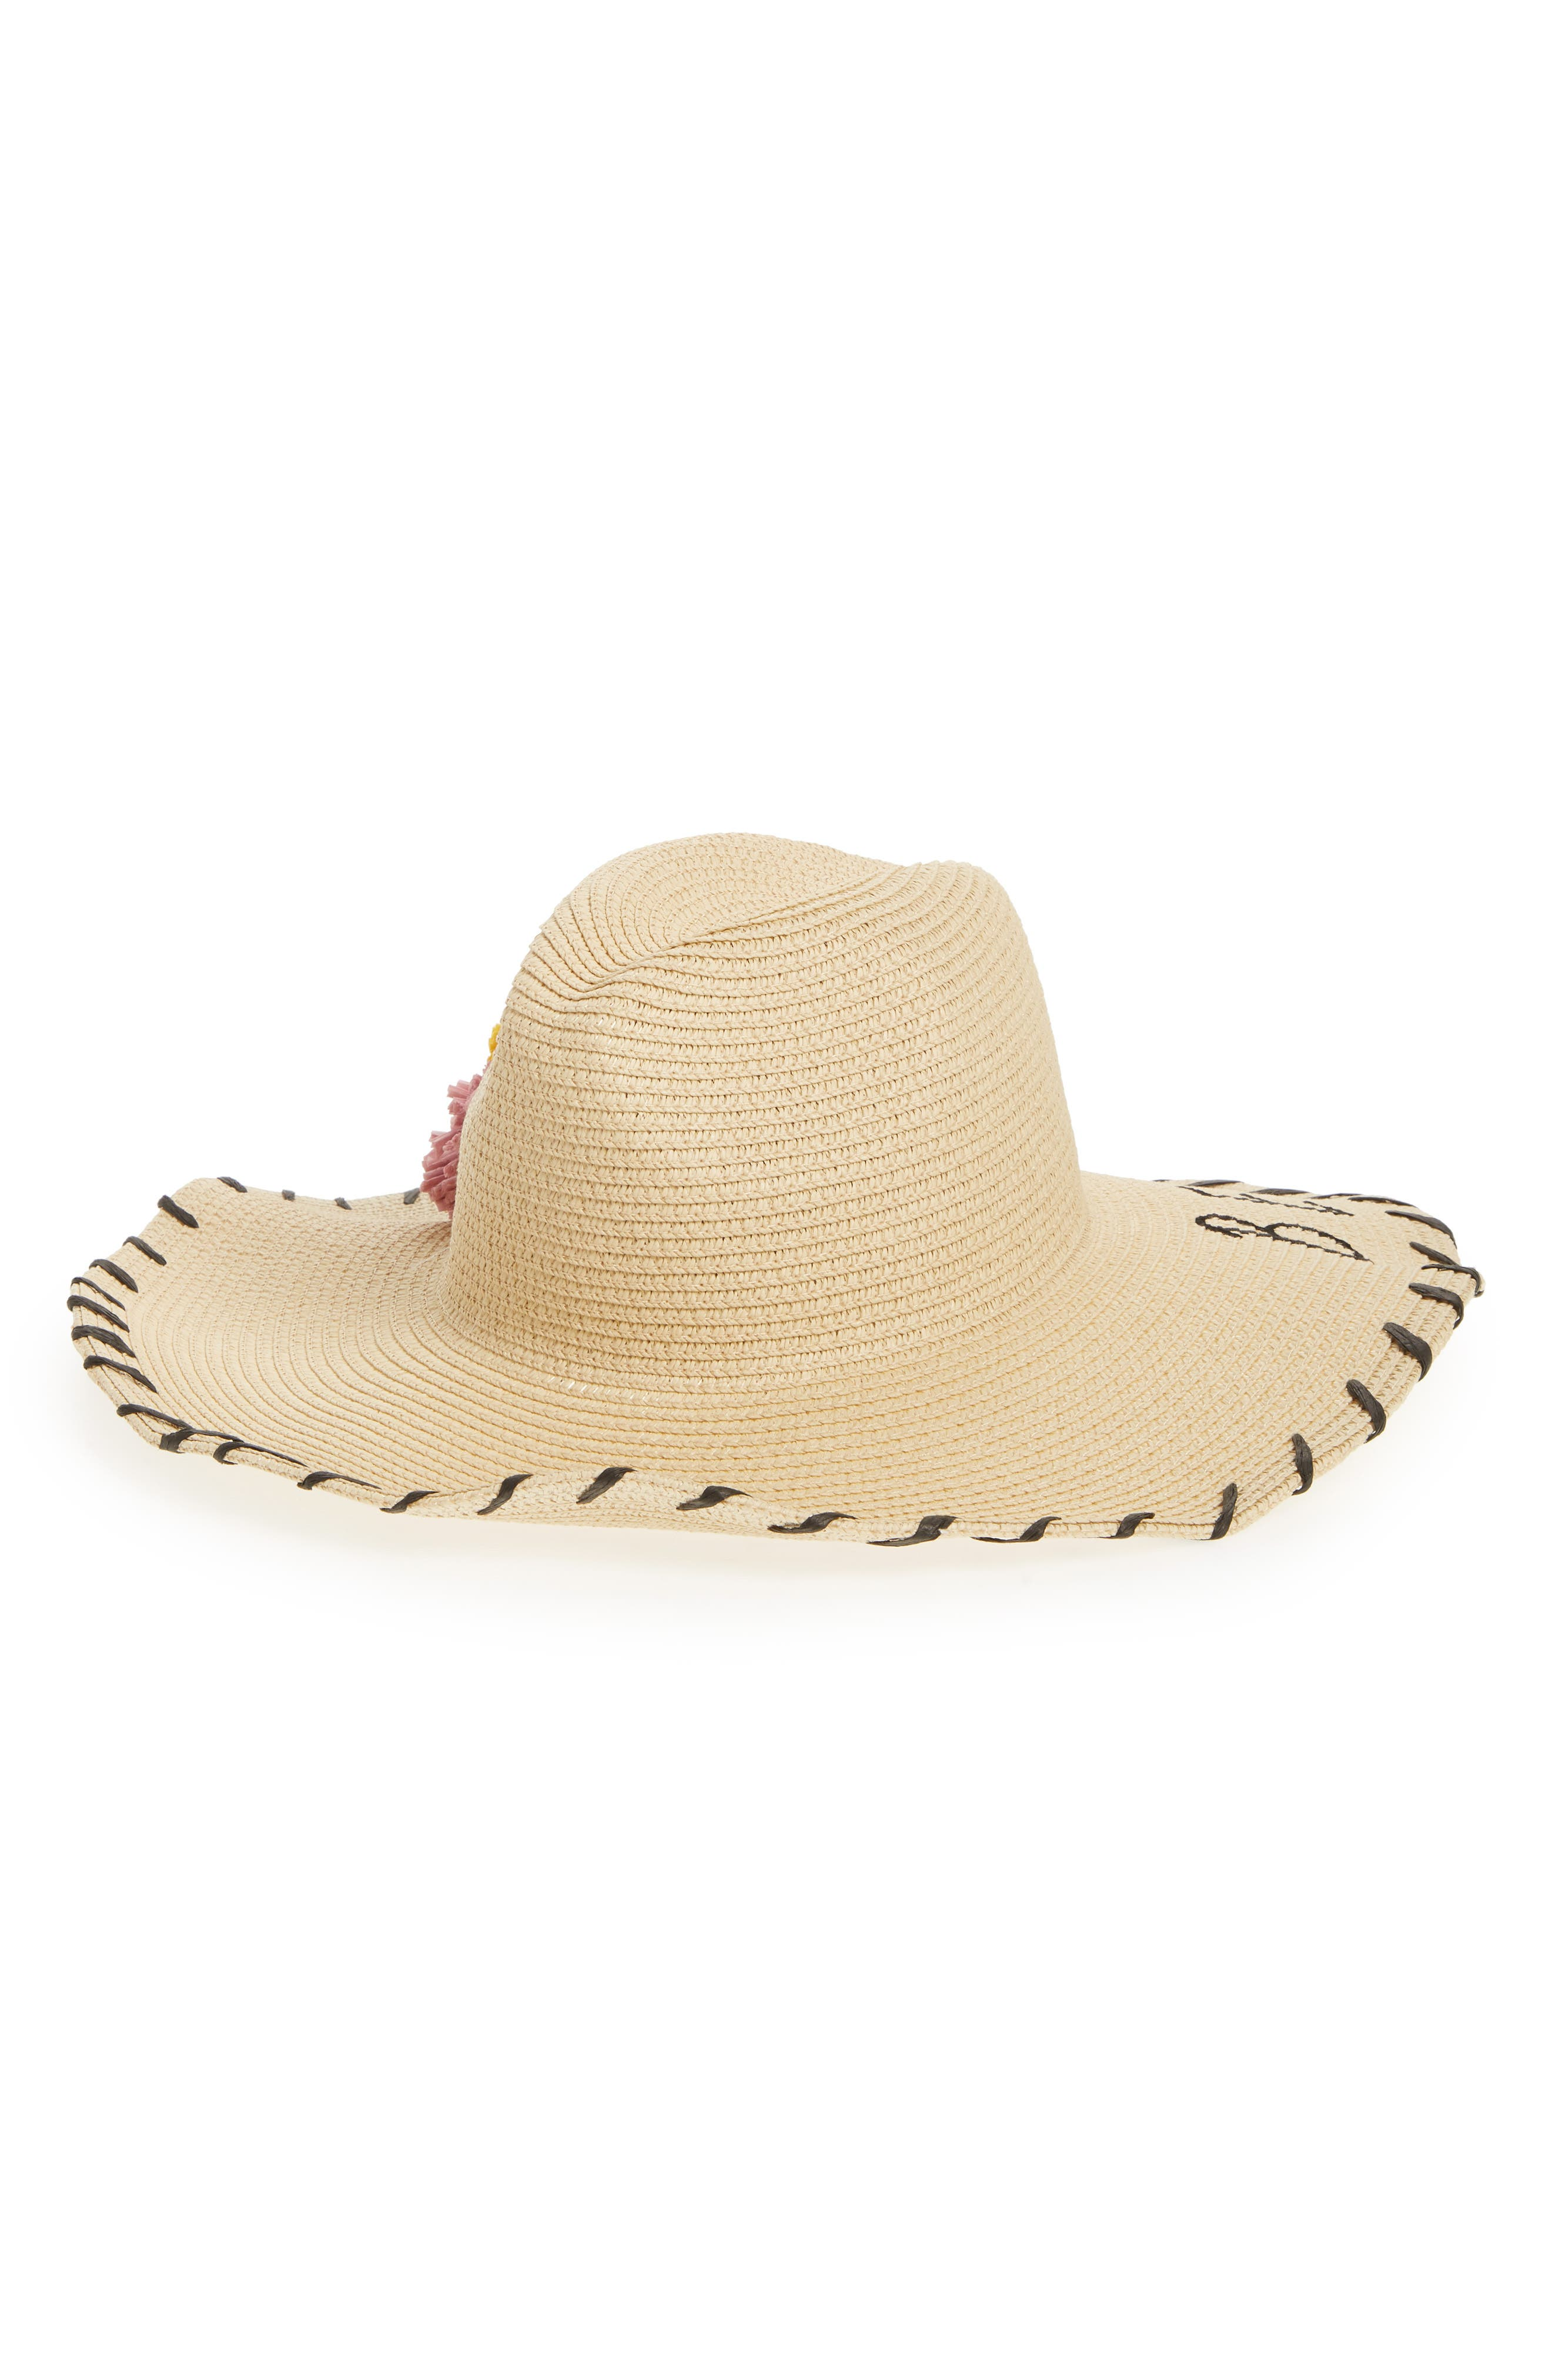 Verbiage Pom Straw Panama Hat,                         Main,                         color, 250